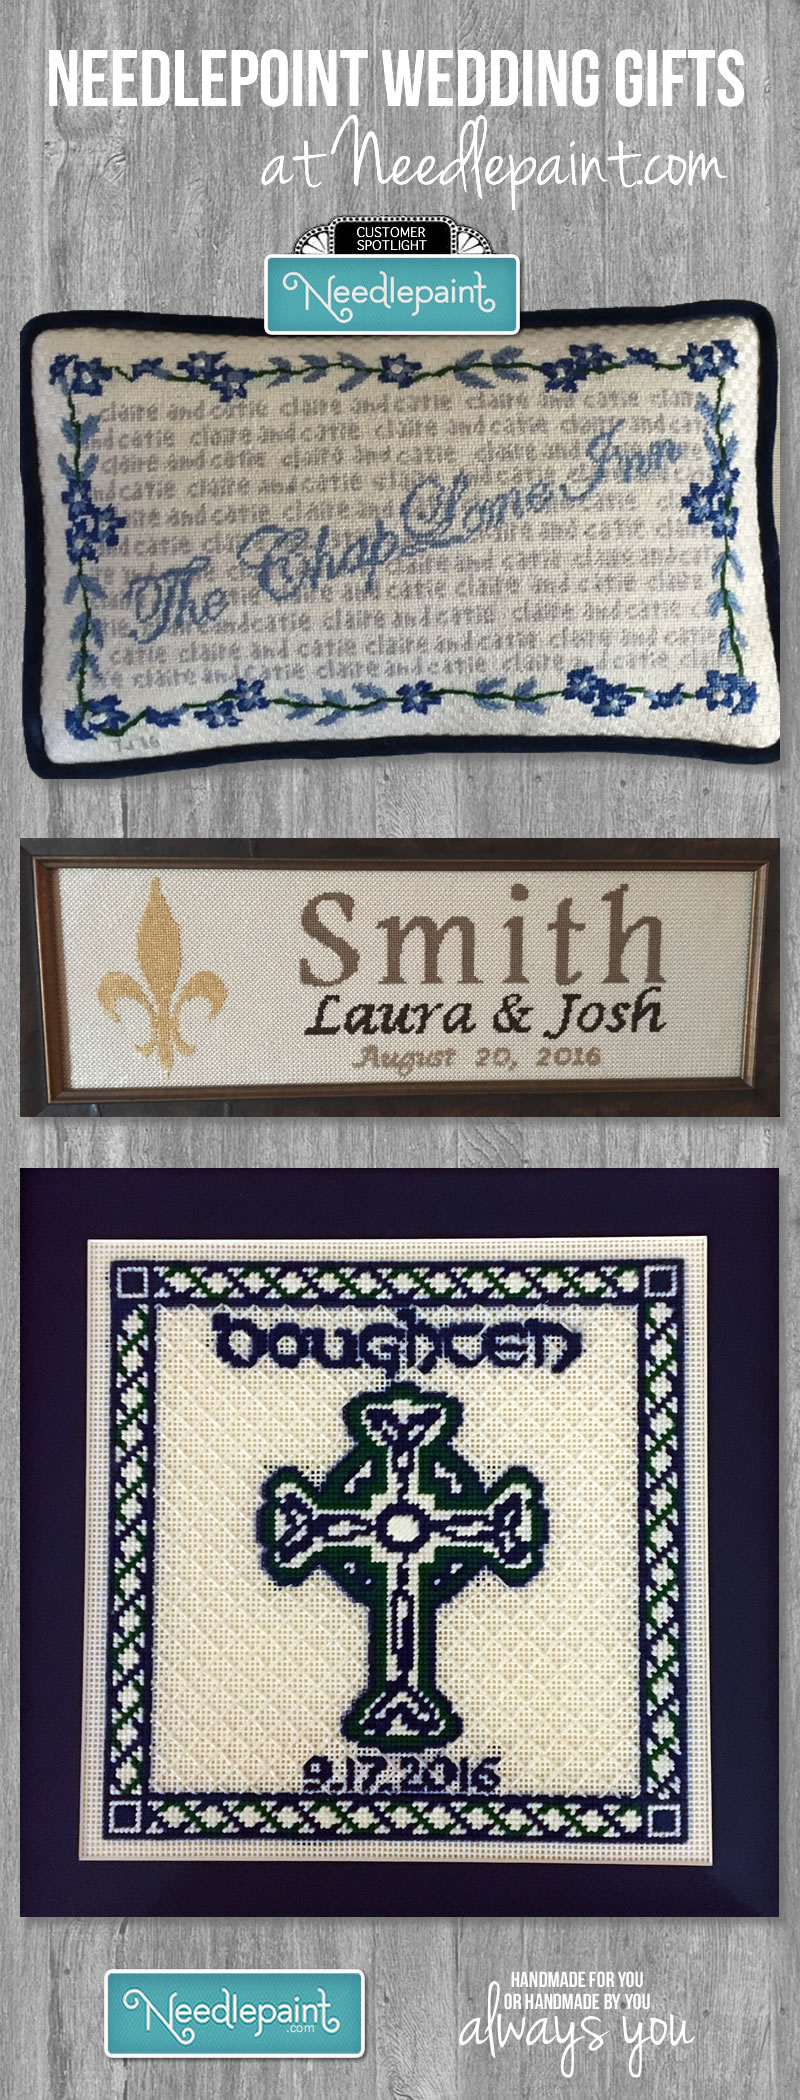 Wedding Family Name Gift Needlepoint